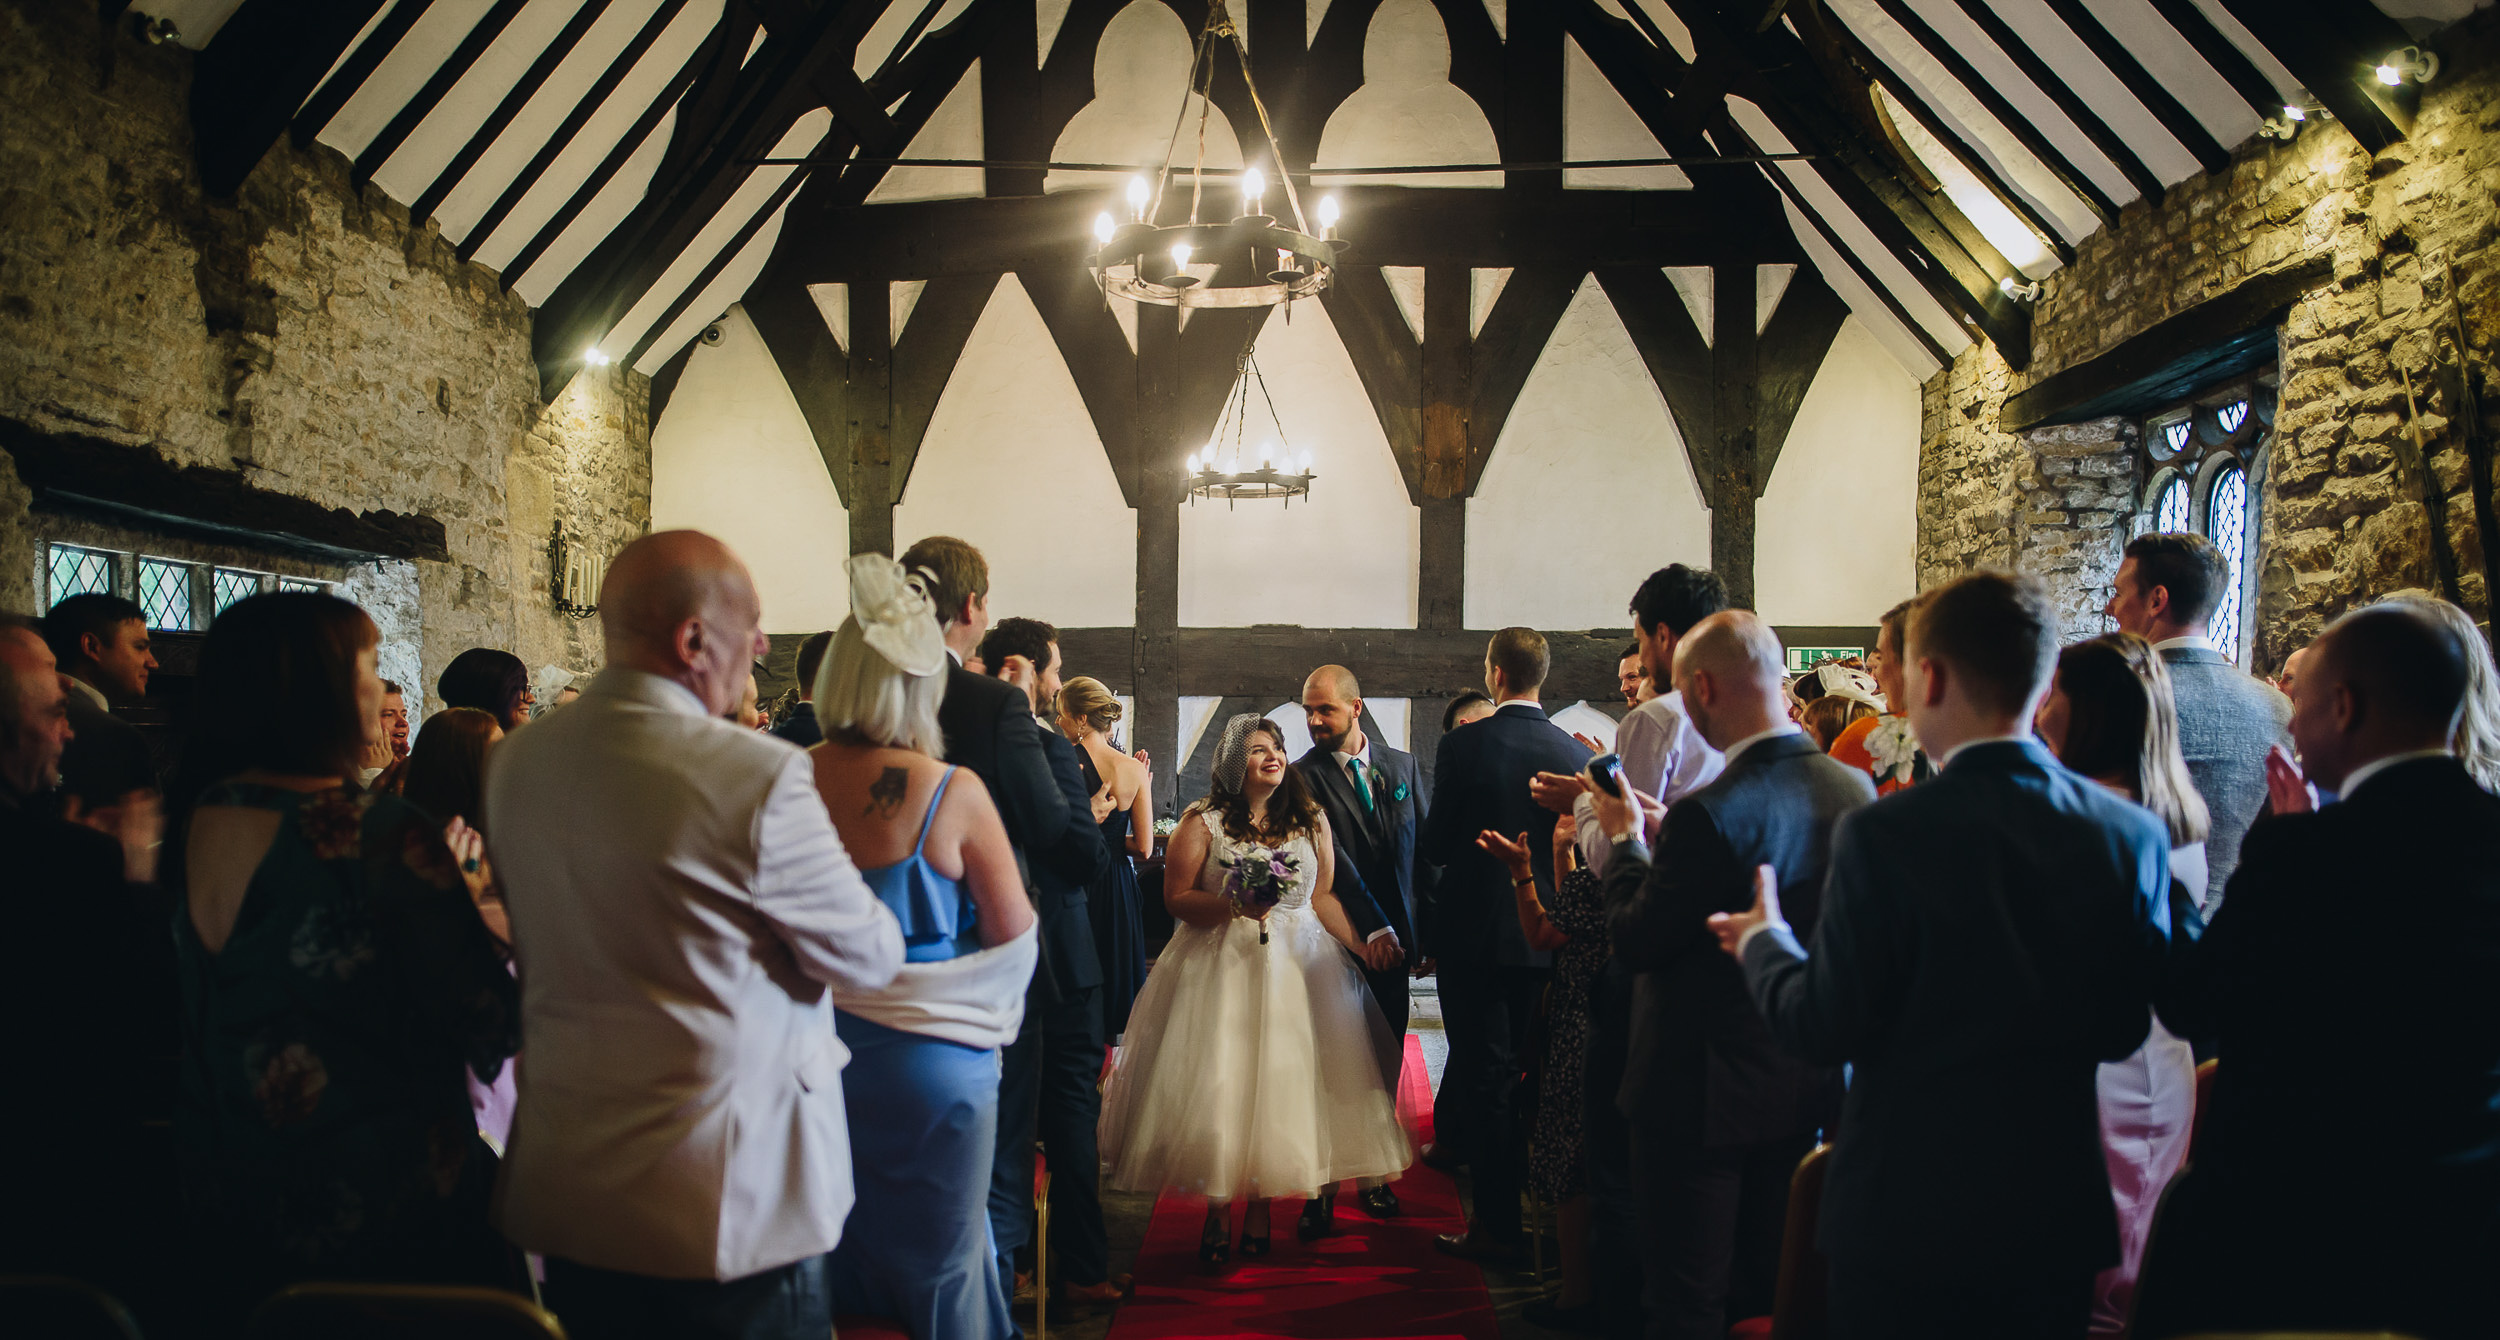 Smithills-hall-wedding-manchester-the-barlow-edgworth-hadfield-31.jpg